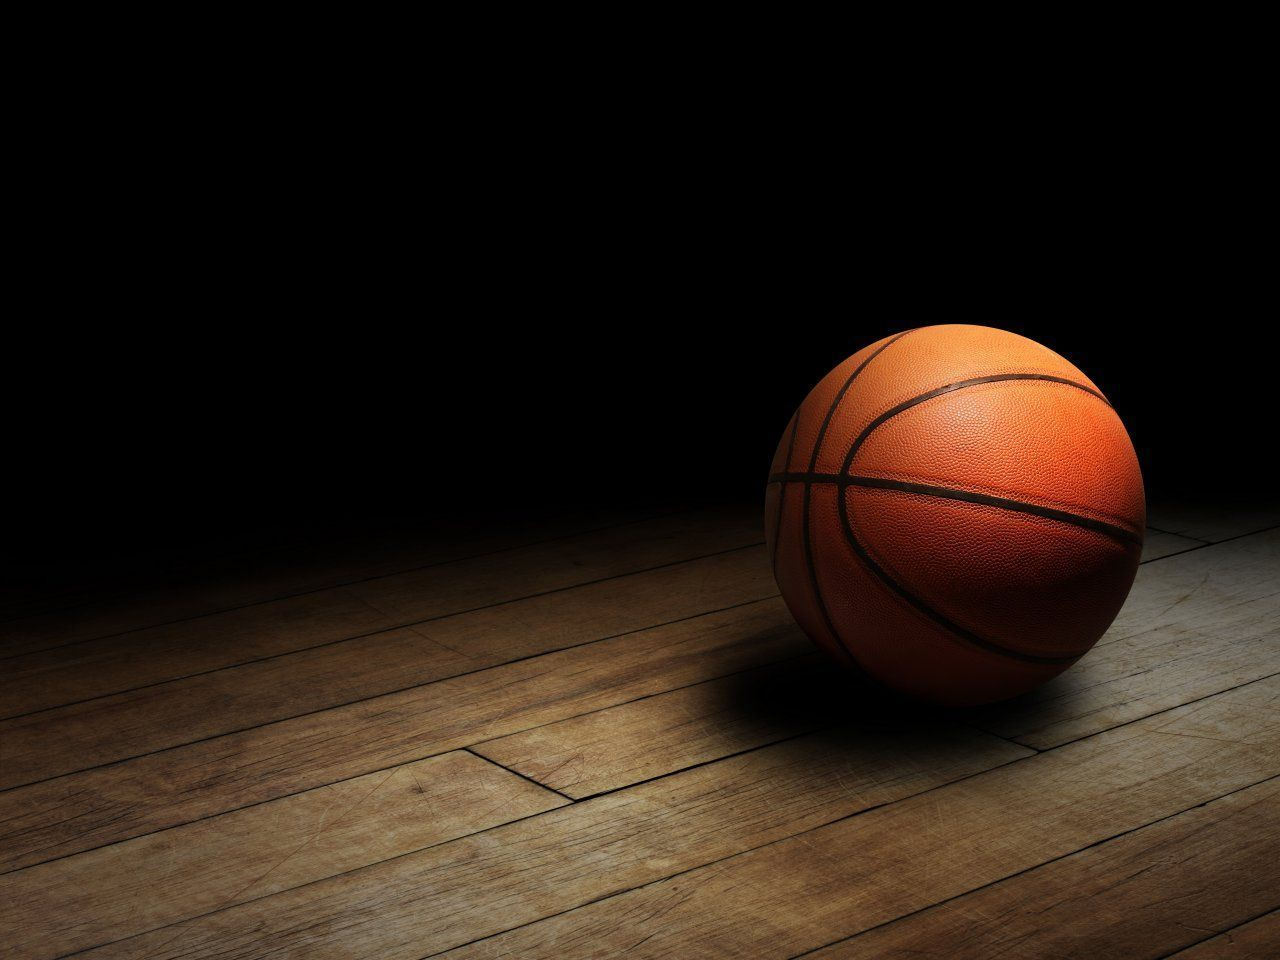 Basketball Wallpaper Basketball Court Wood Background